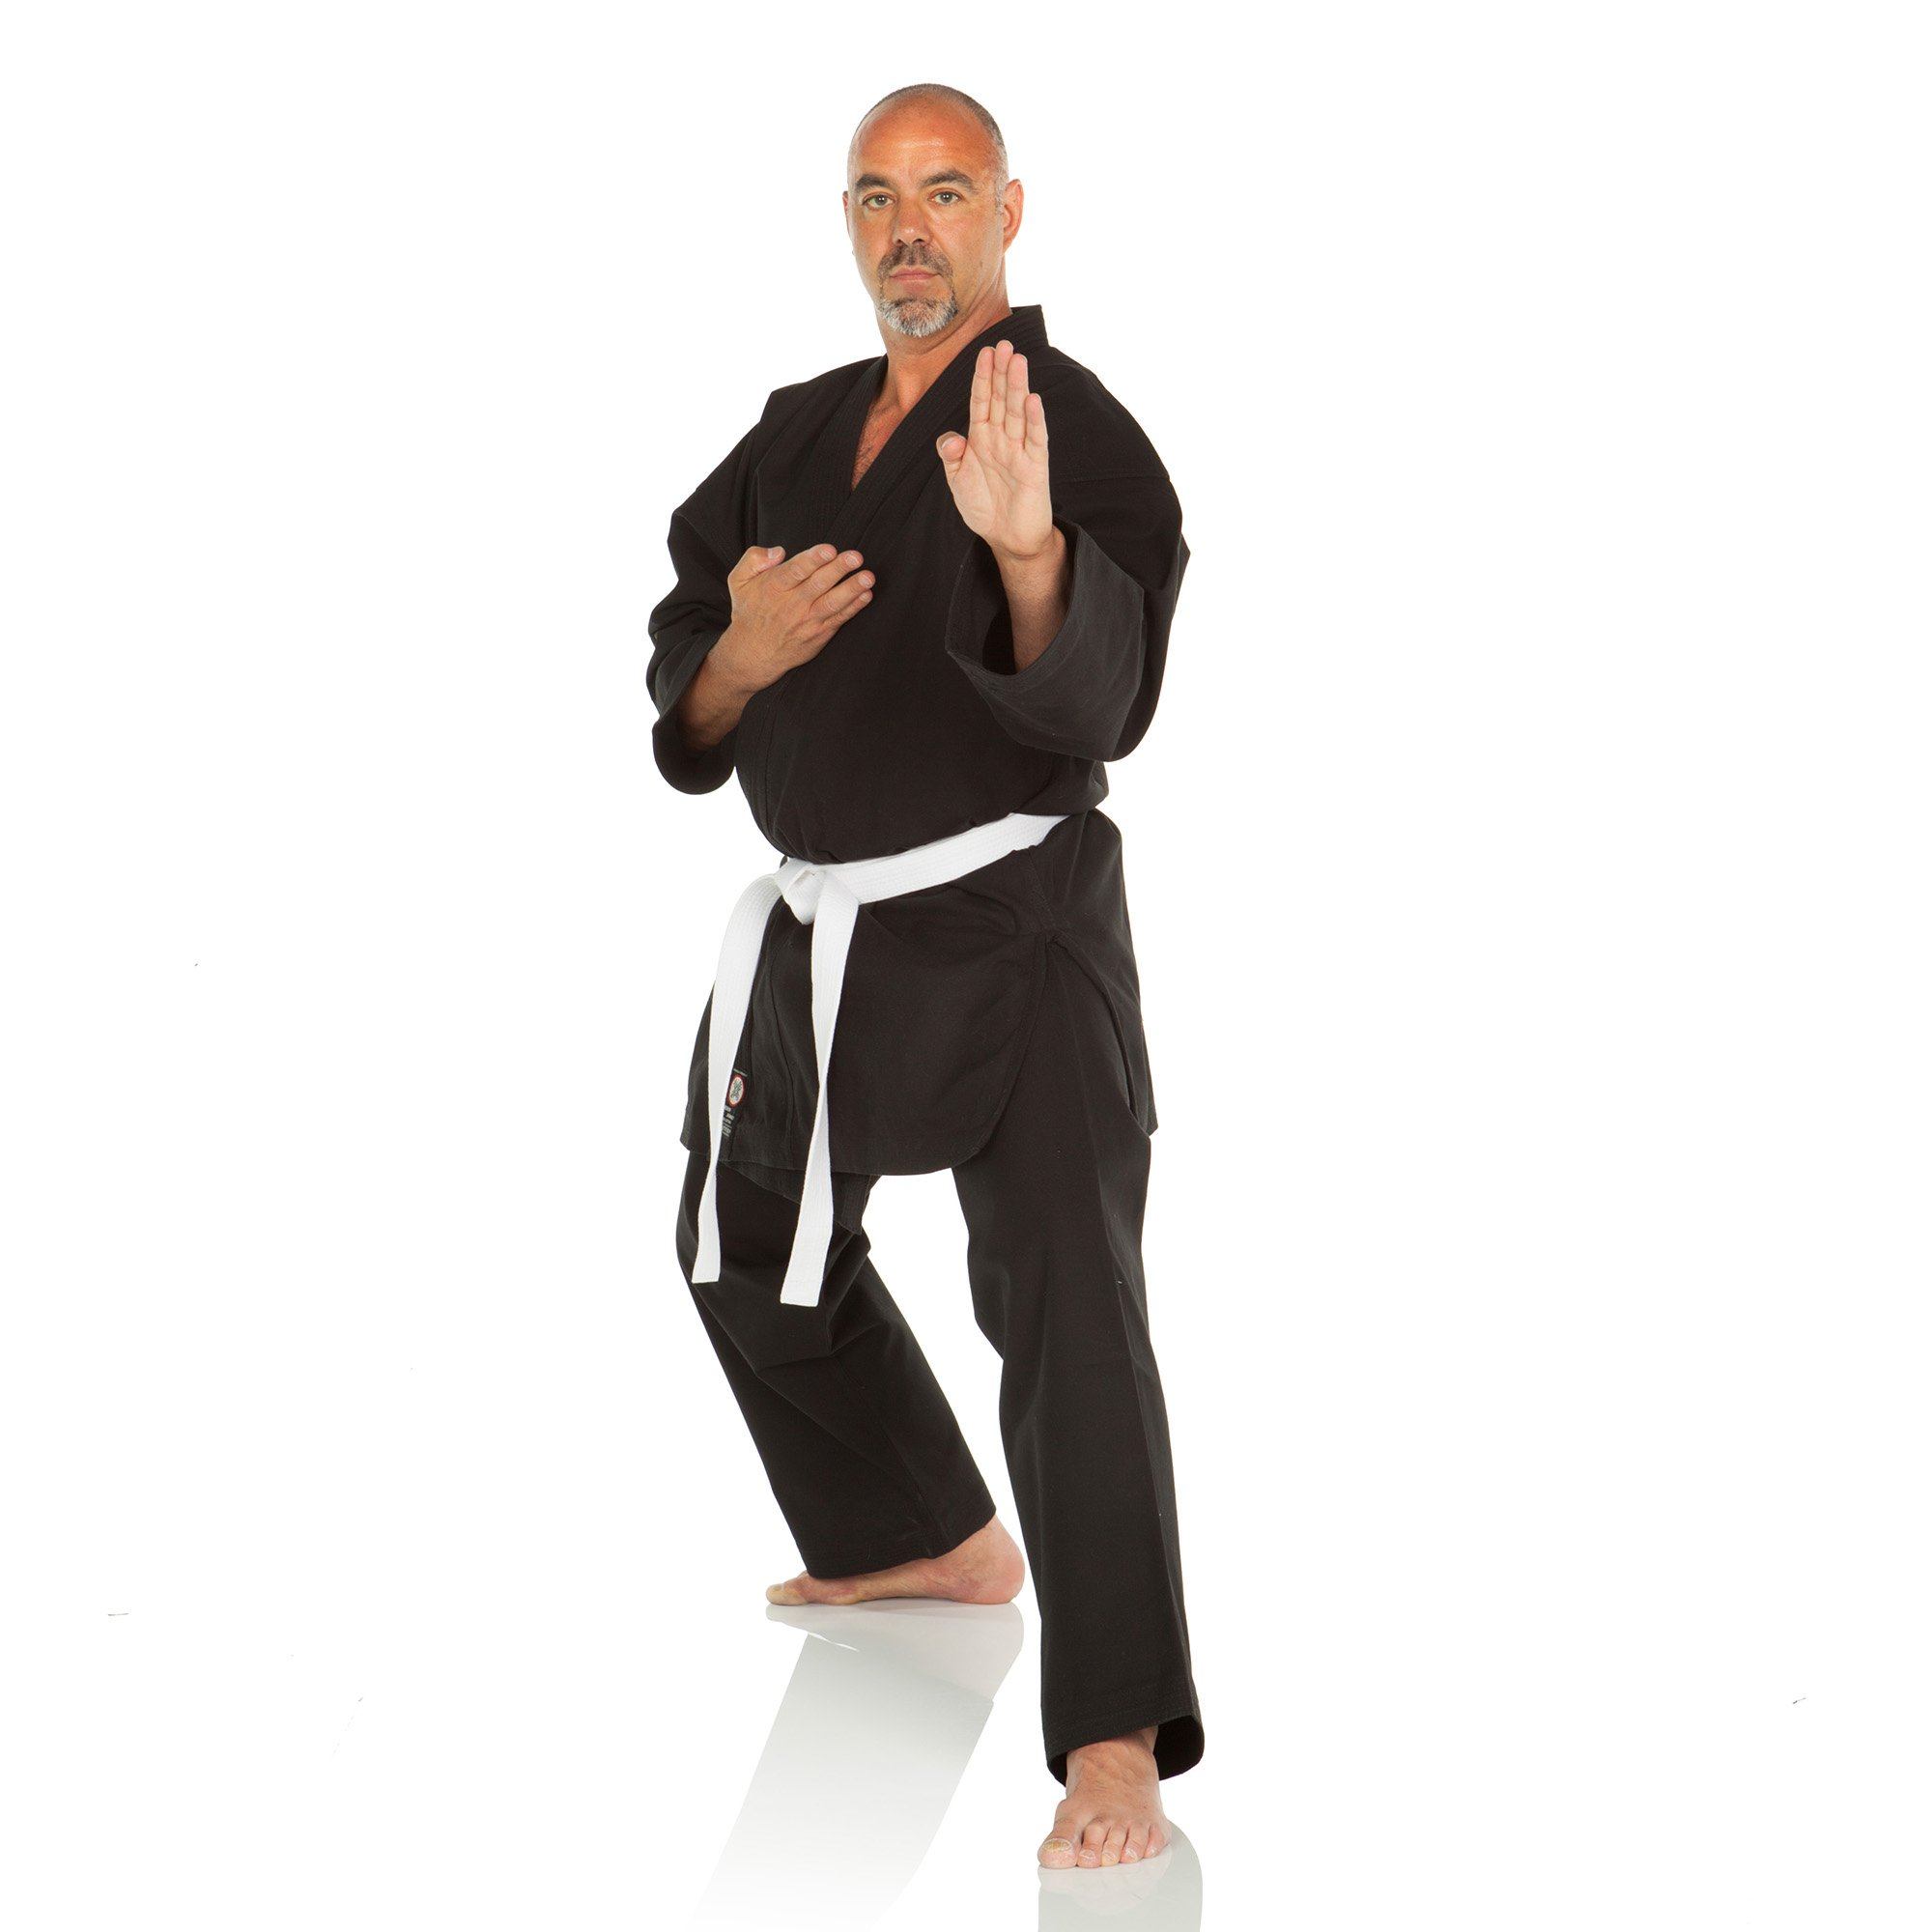 Ronin Brand 12oz. Traditional Heavyweight Karate Uniform (Black, 2) by Ronin Brand